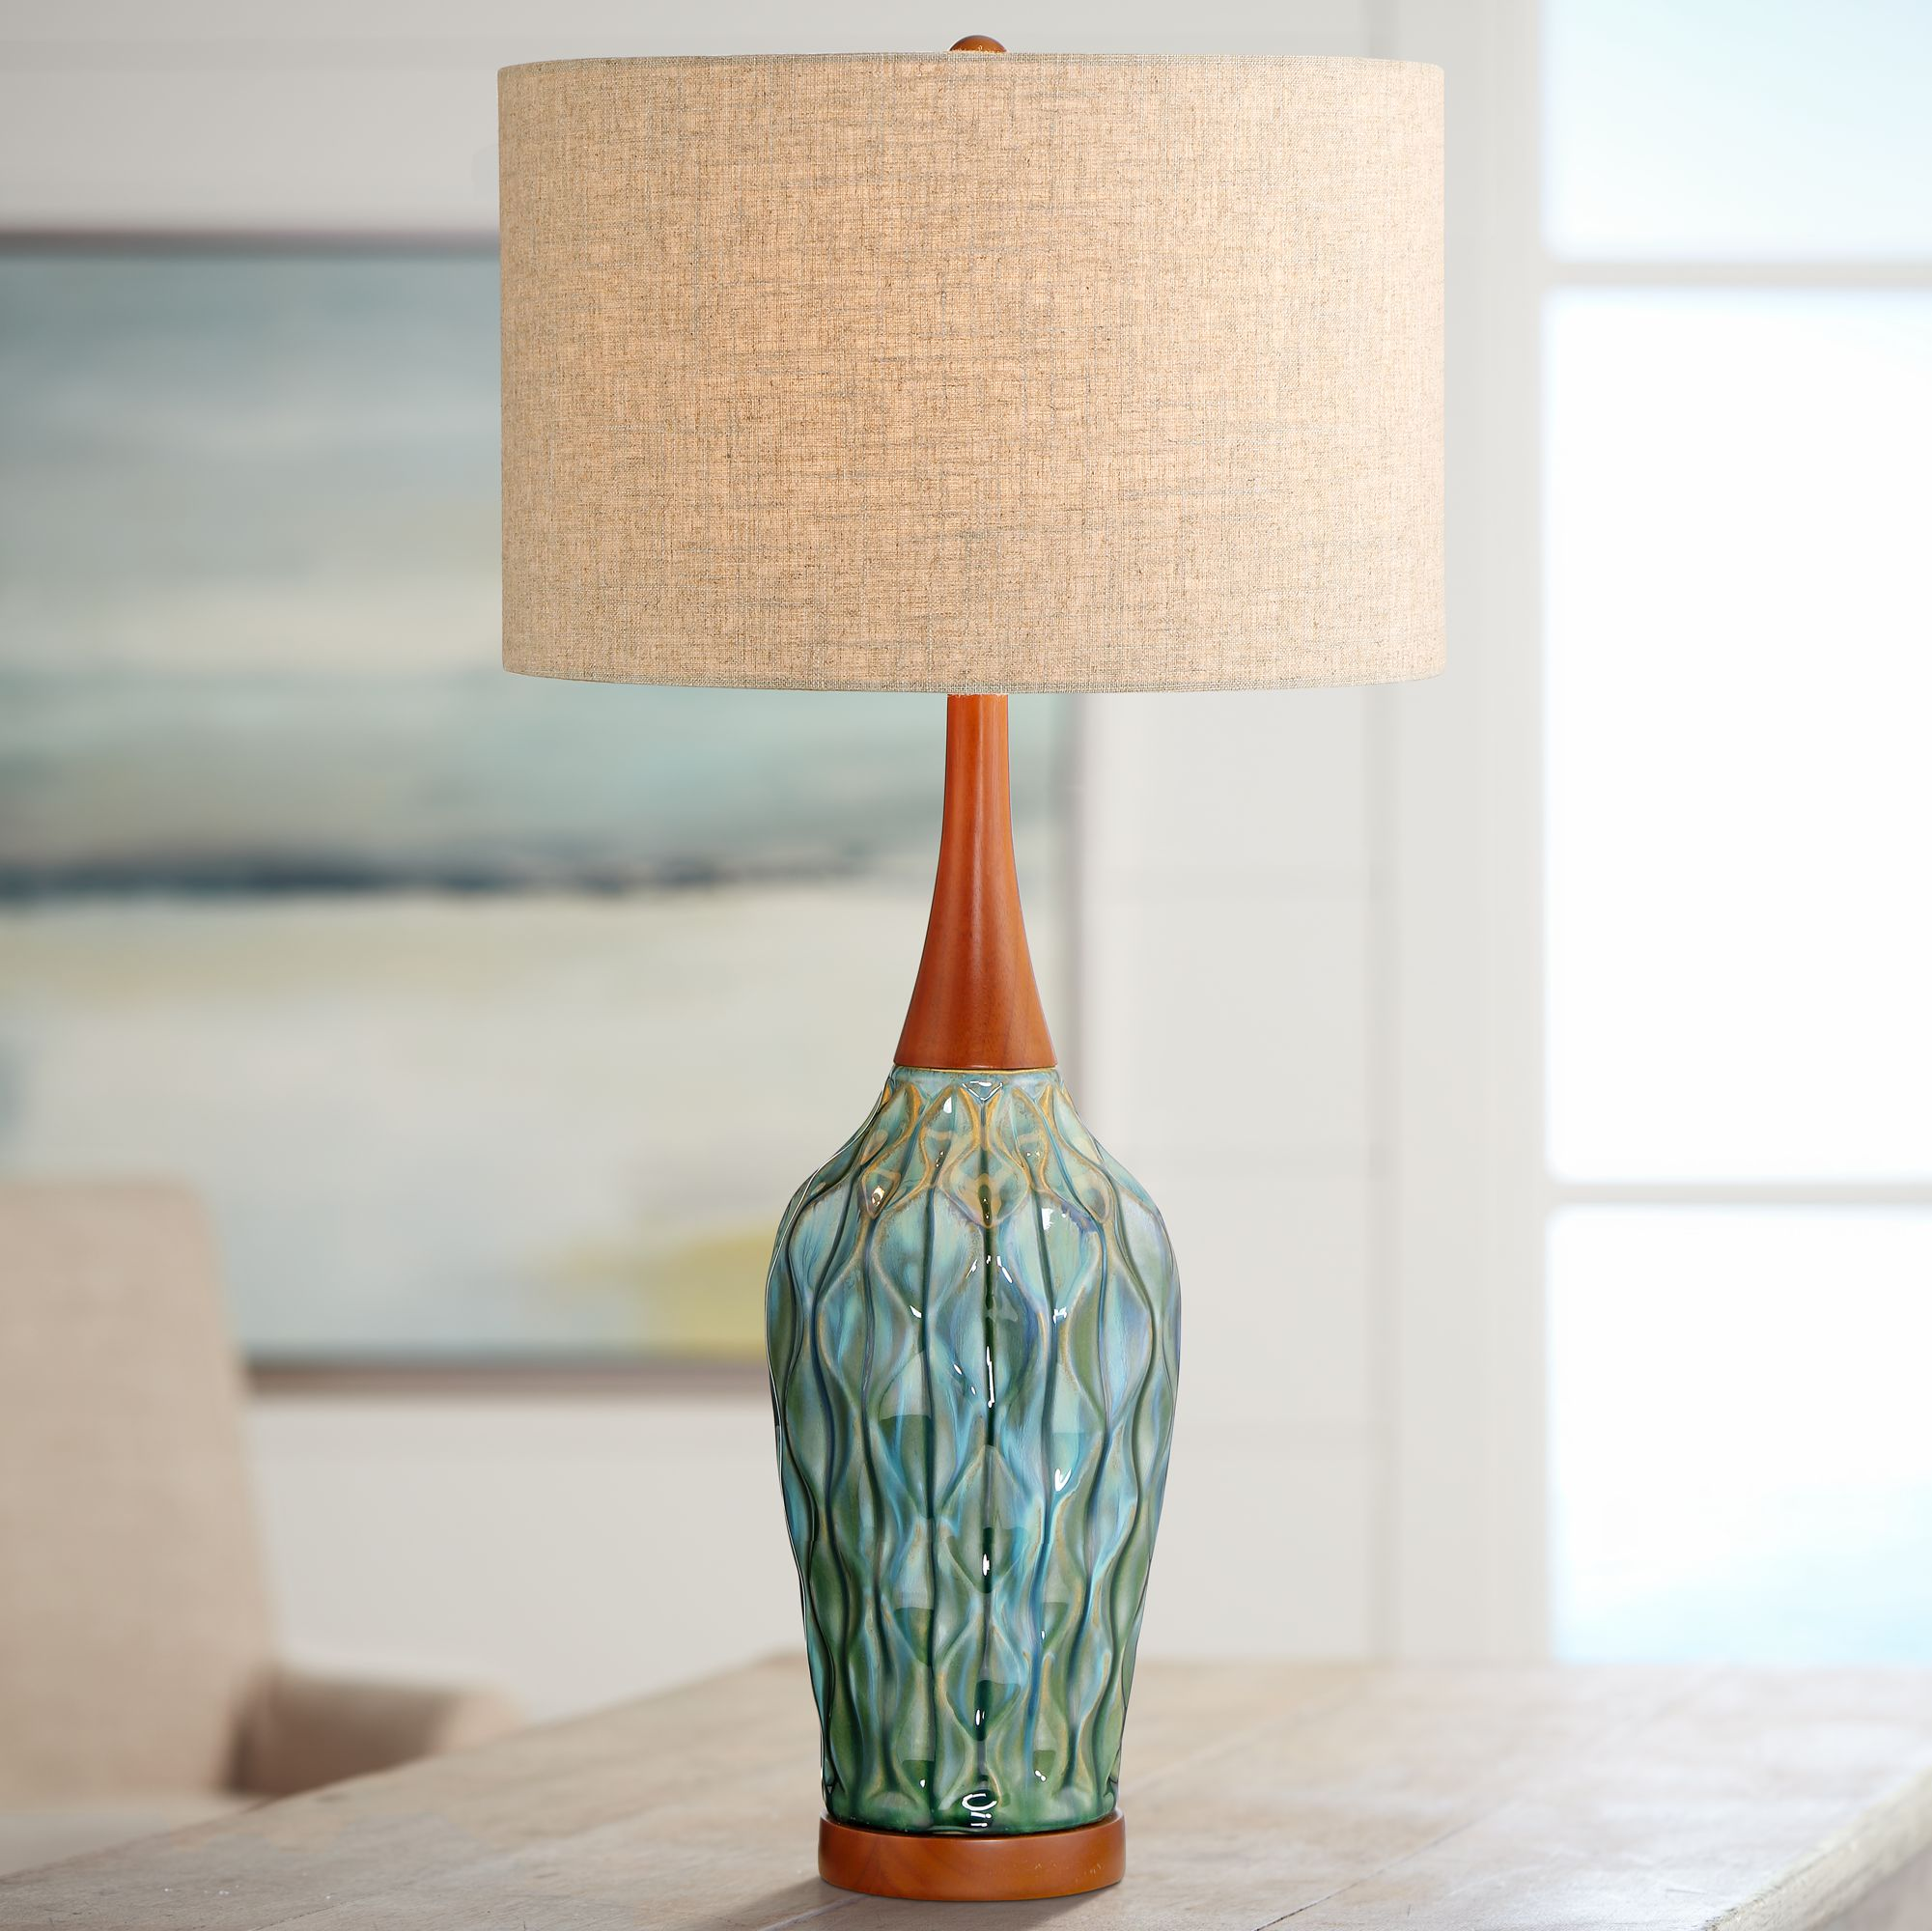 Details About Mid Century Modern Table Lamp Ceramic Blue Wood For Living Room Bedroom